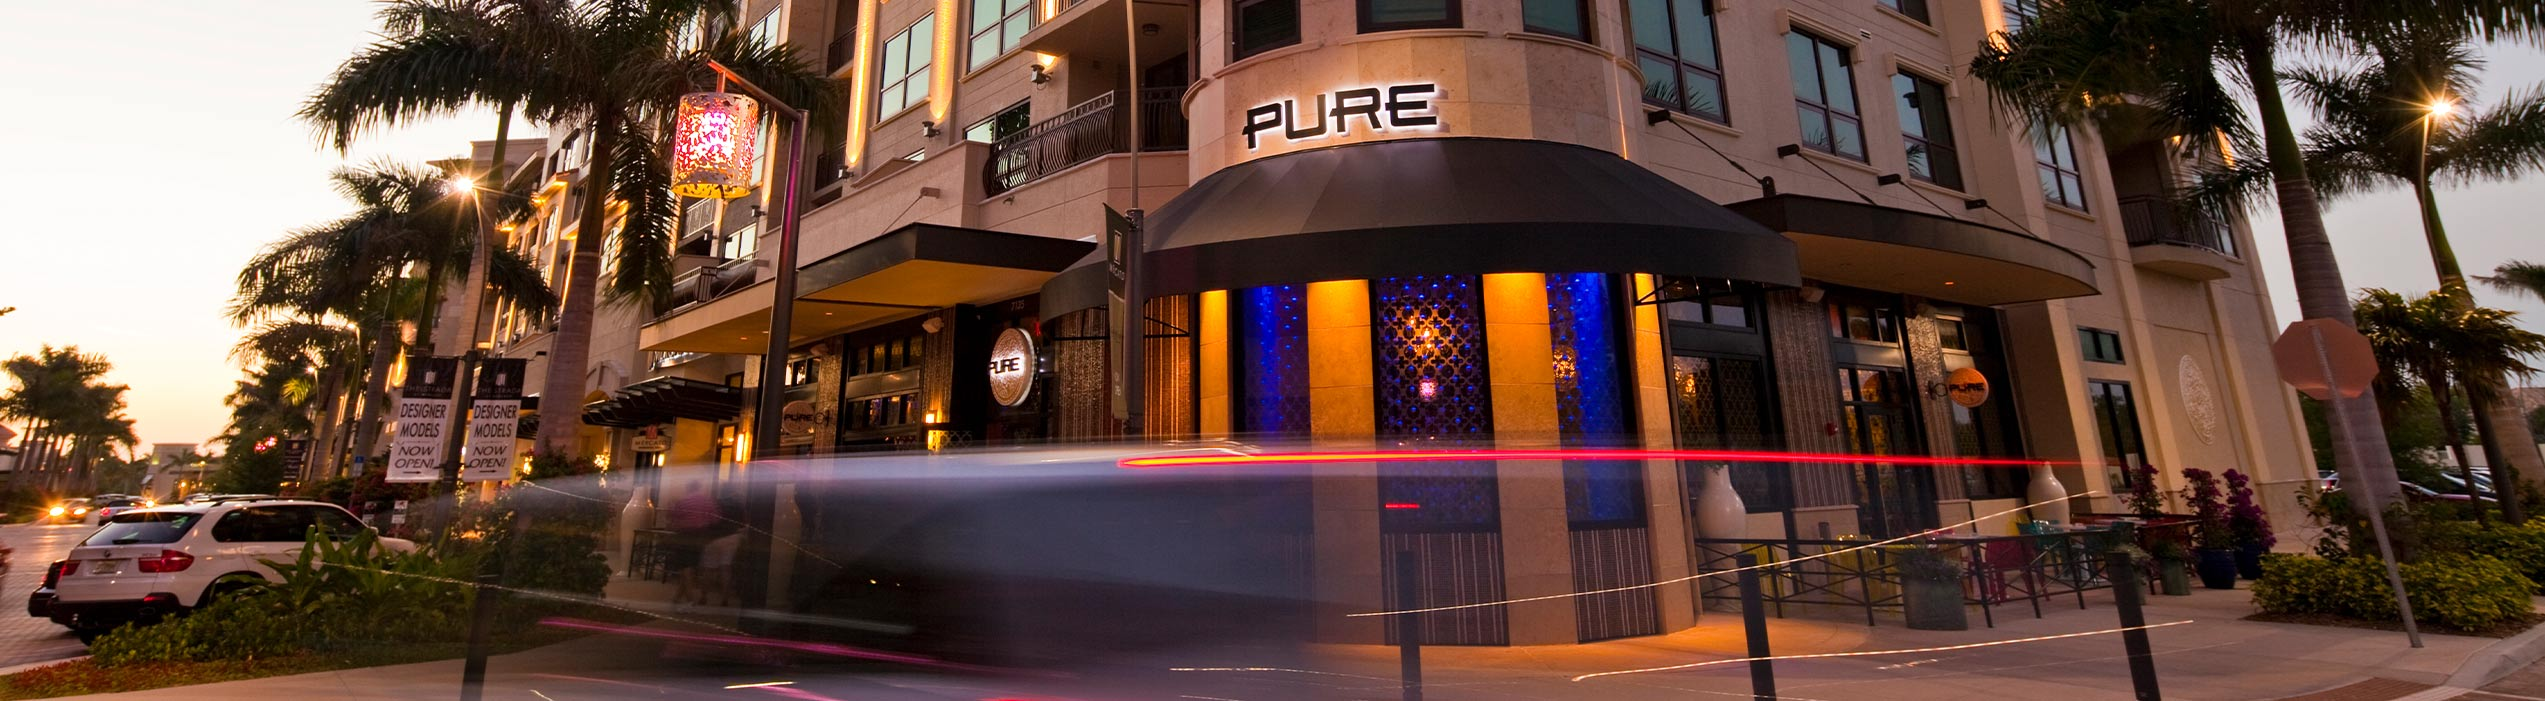 Pure | MK Architecture - Commercial Architecture of Southwest Florida